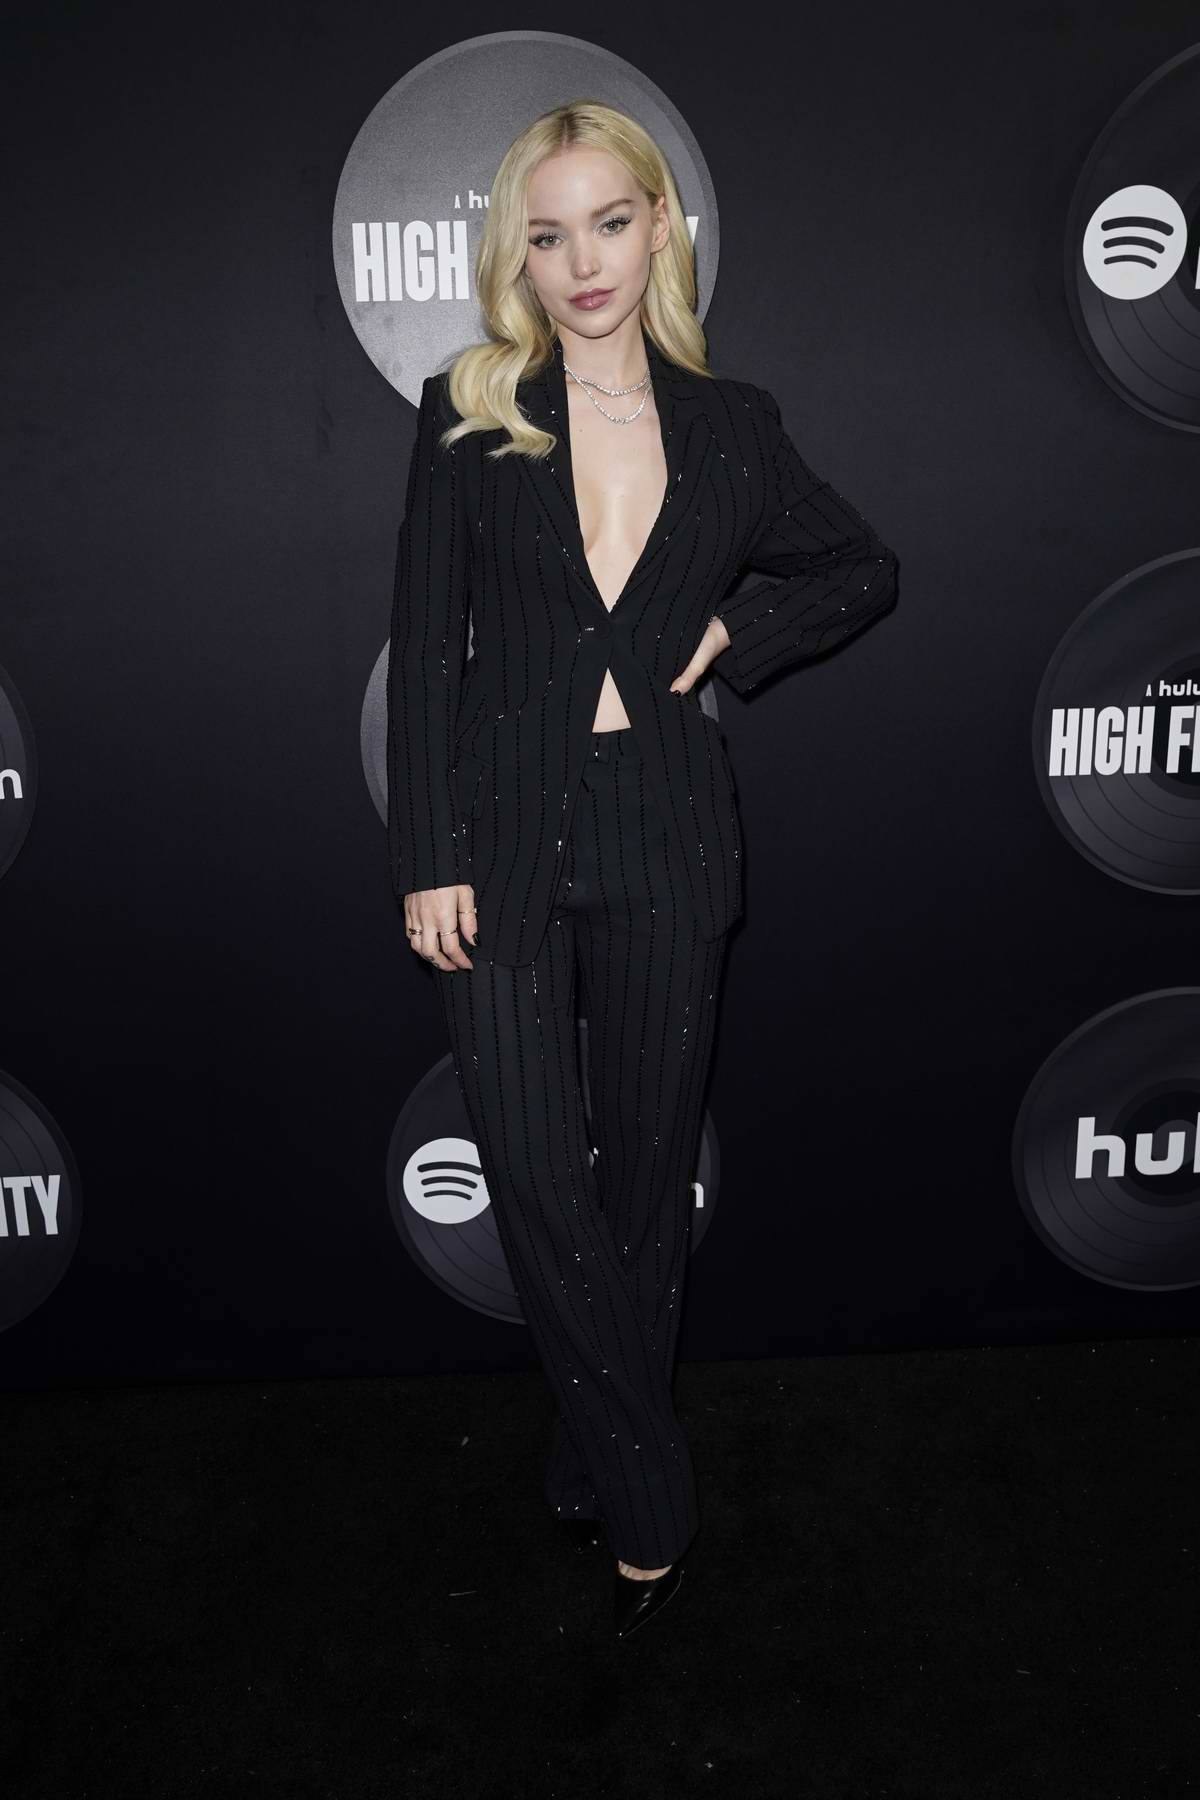 Dove Cameron attends the Premiere of Hulu's New Dramedy Series 'High Fidelity' in New York City